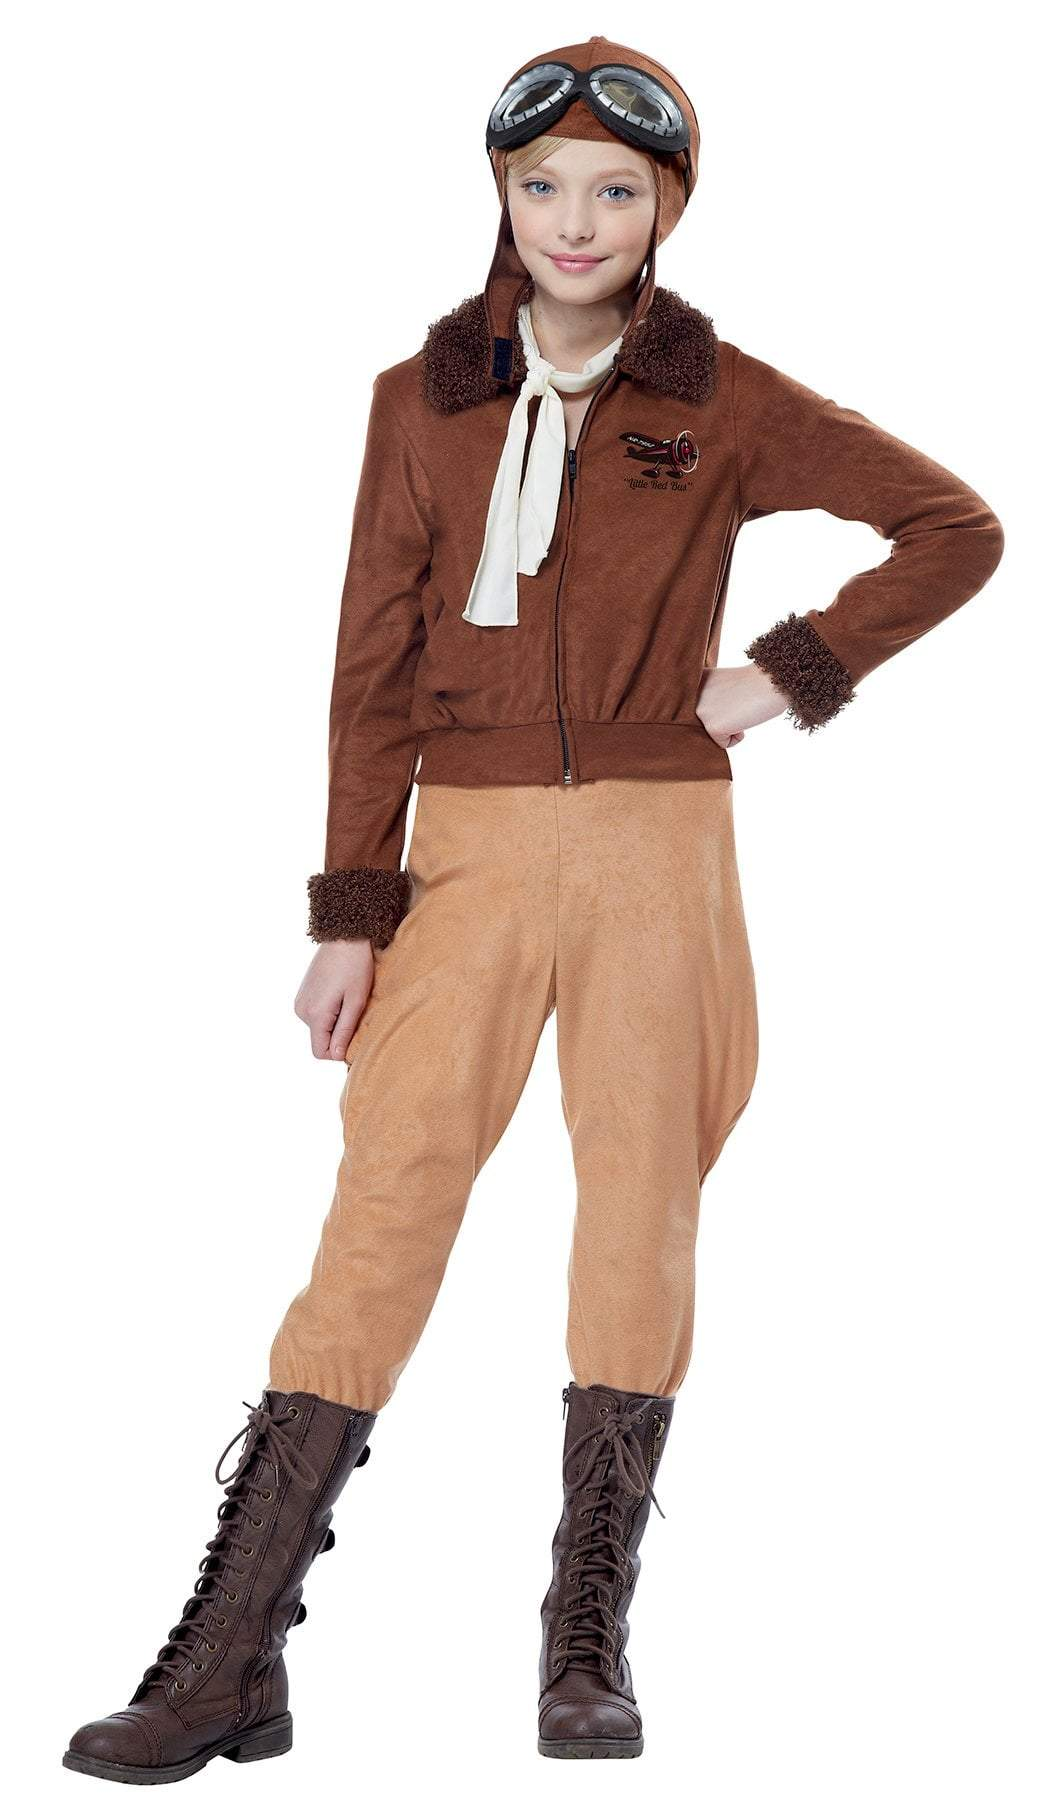 California Costumes Costumes LARGE Girls Amelia Earhart/Aviator Costume